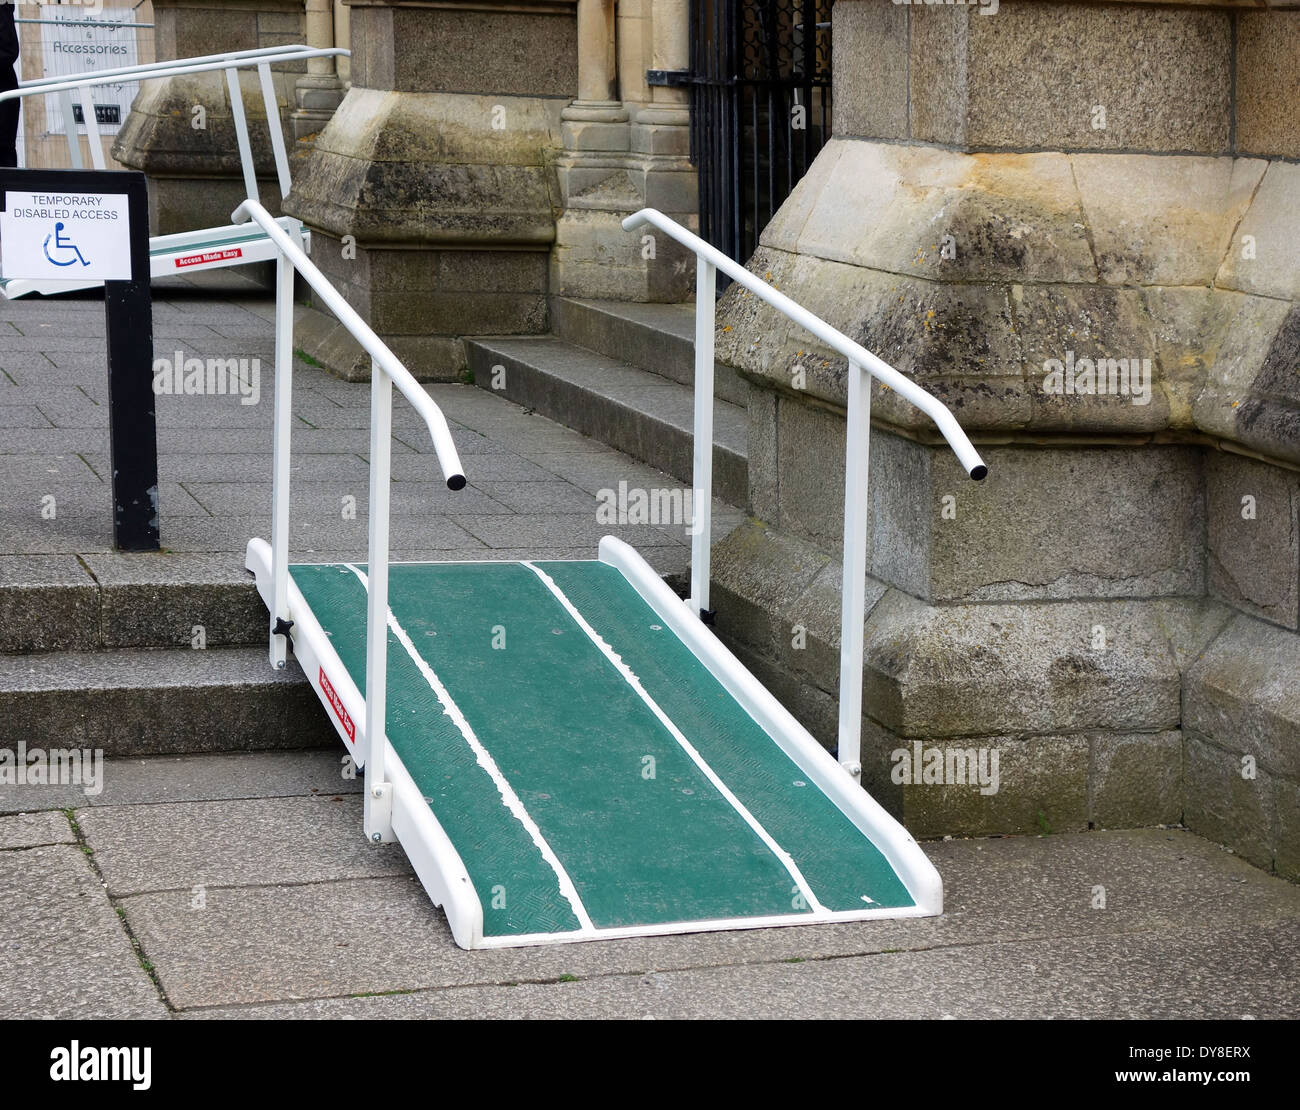 a temporary disabled ramp - Stock Image